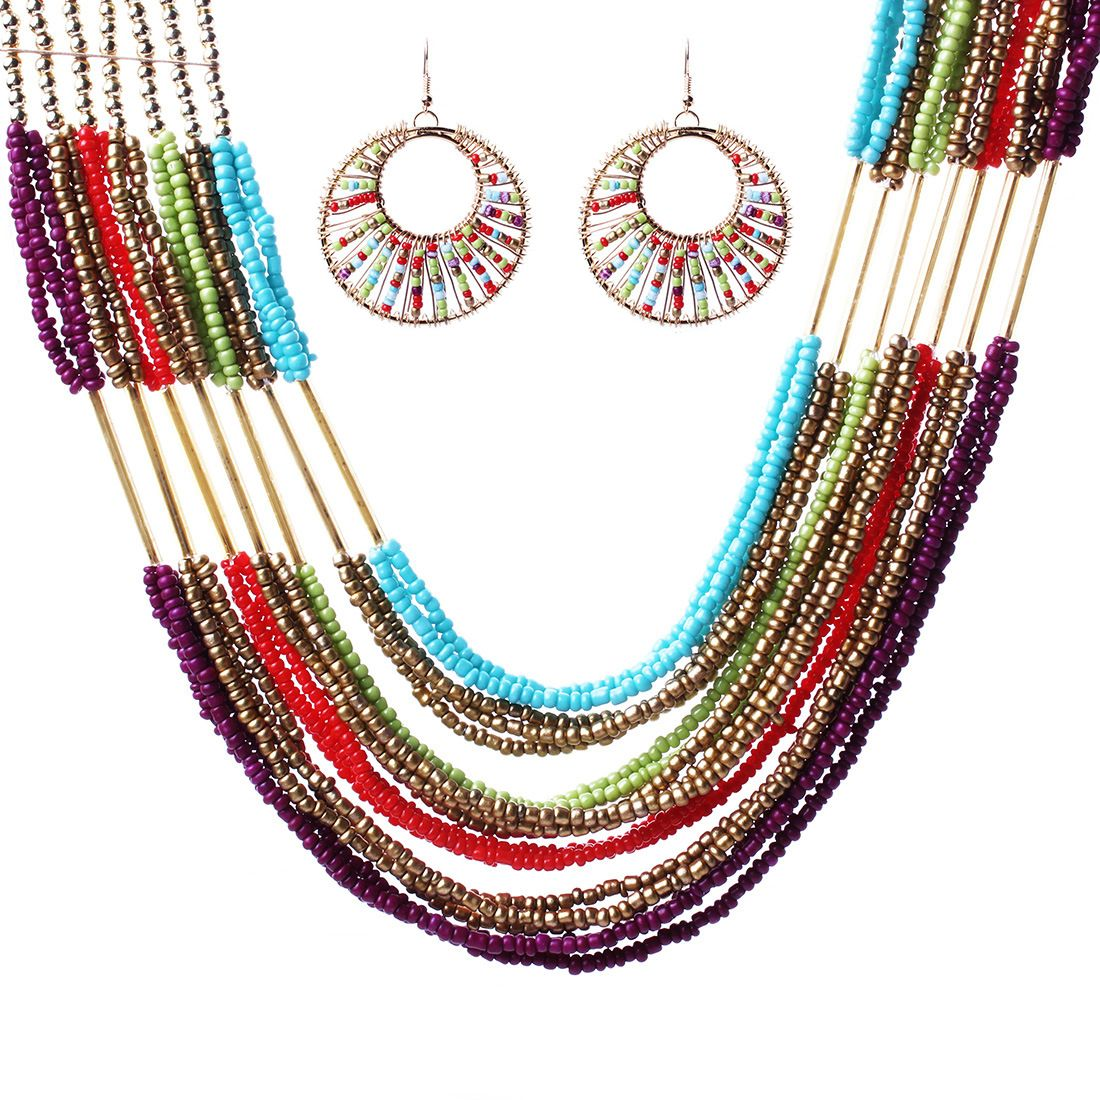 Colorful-Multi-Strand-Two-Tone-Seed-Bead-Cluster-Necklace-Eardrop-Suit